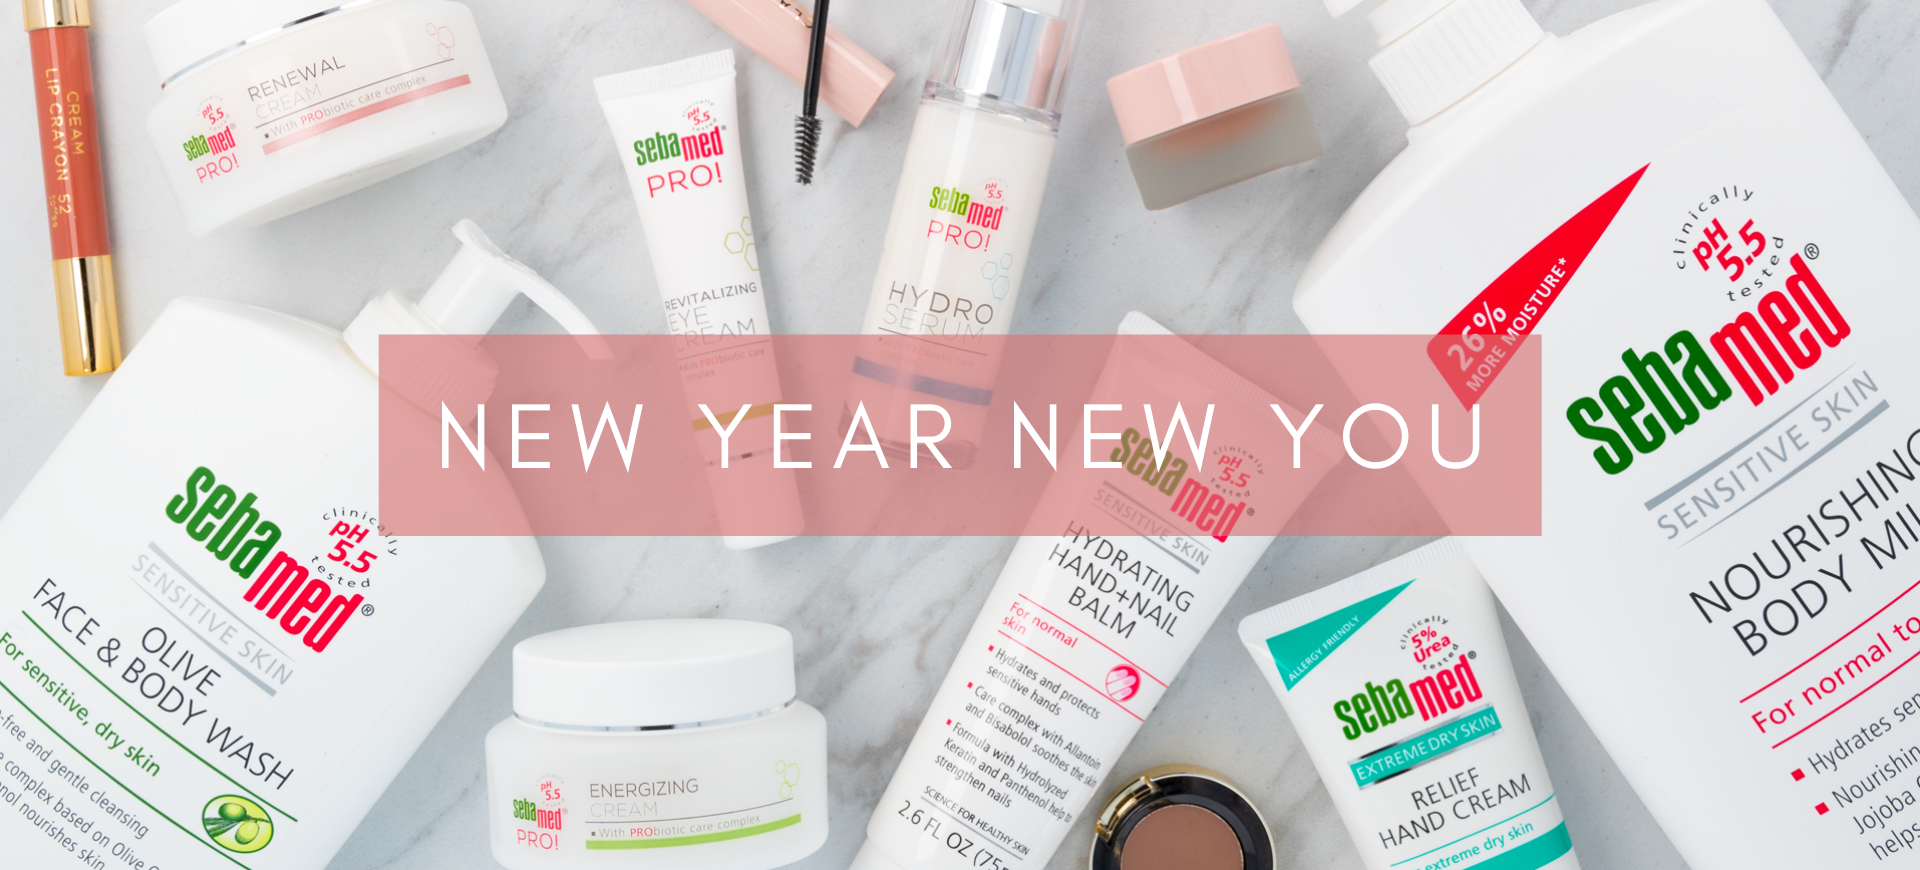 New year new you landing page header